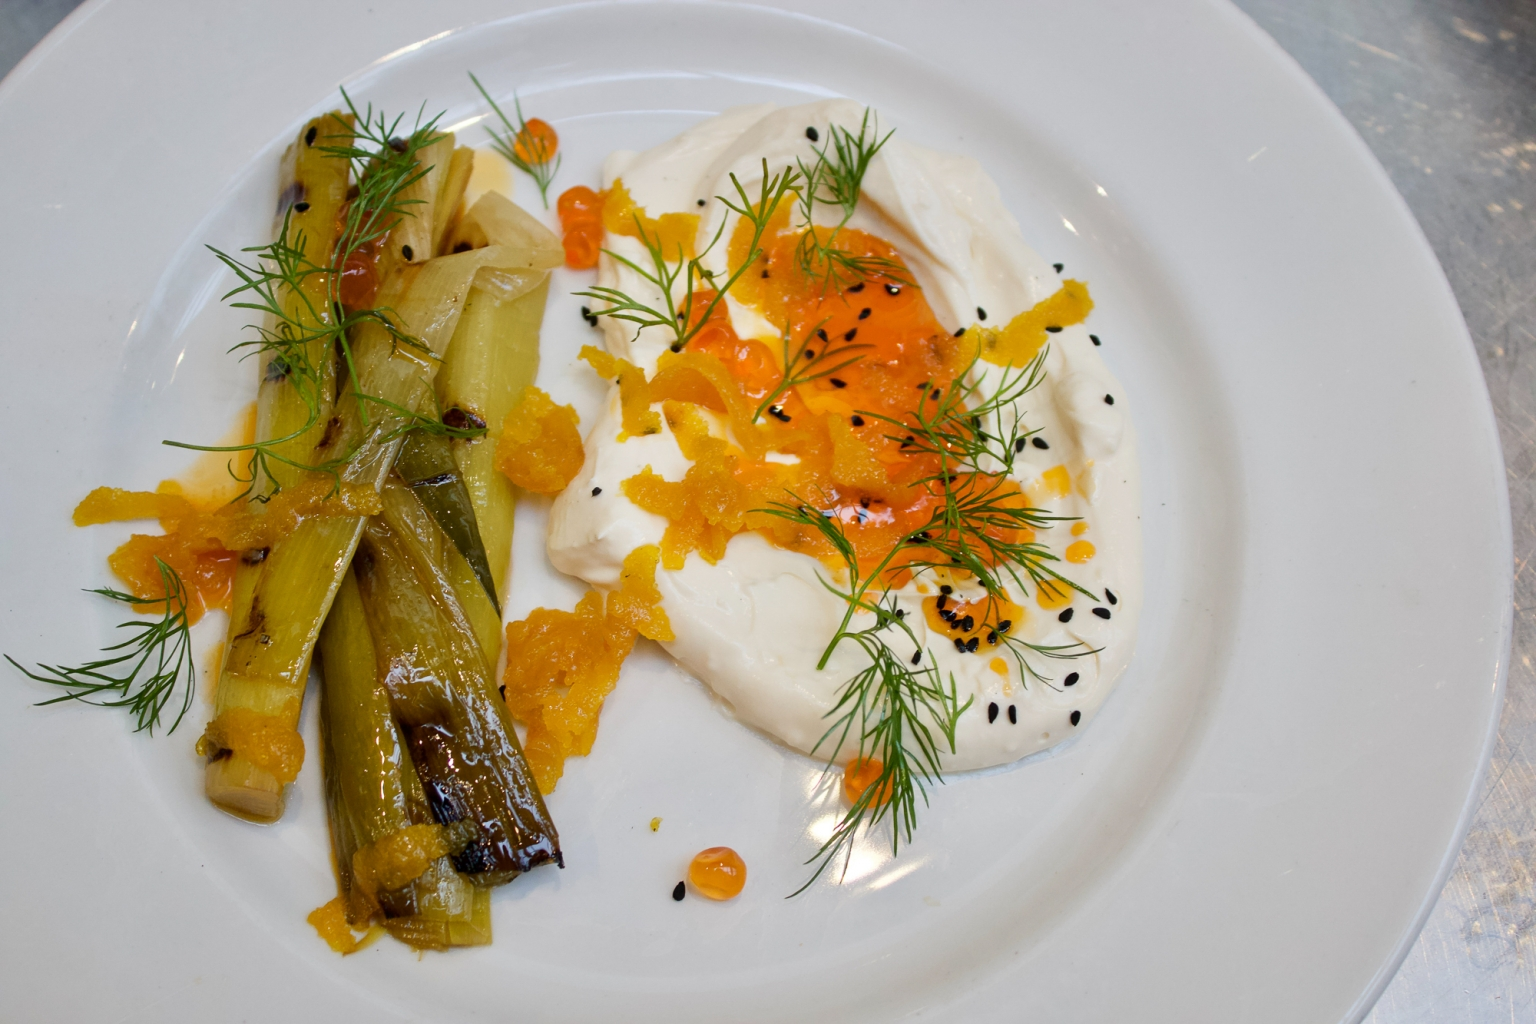 Charcoal grilled leeks with labneh, chilli butter, bottarga and dill at Moro.